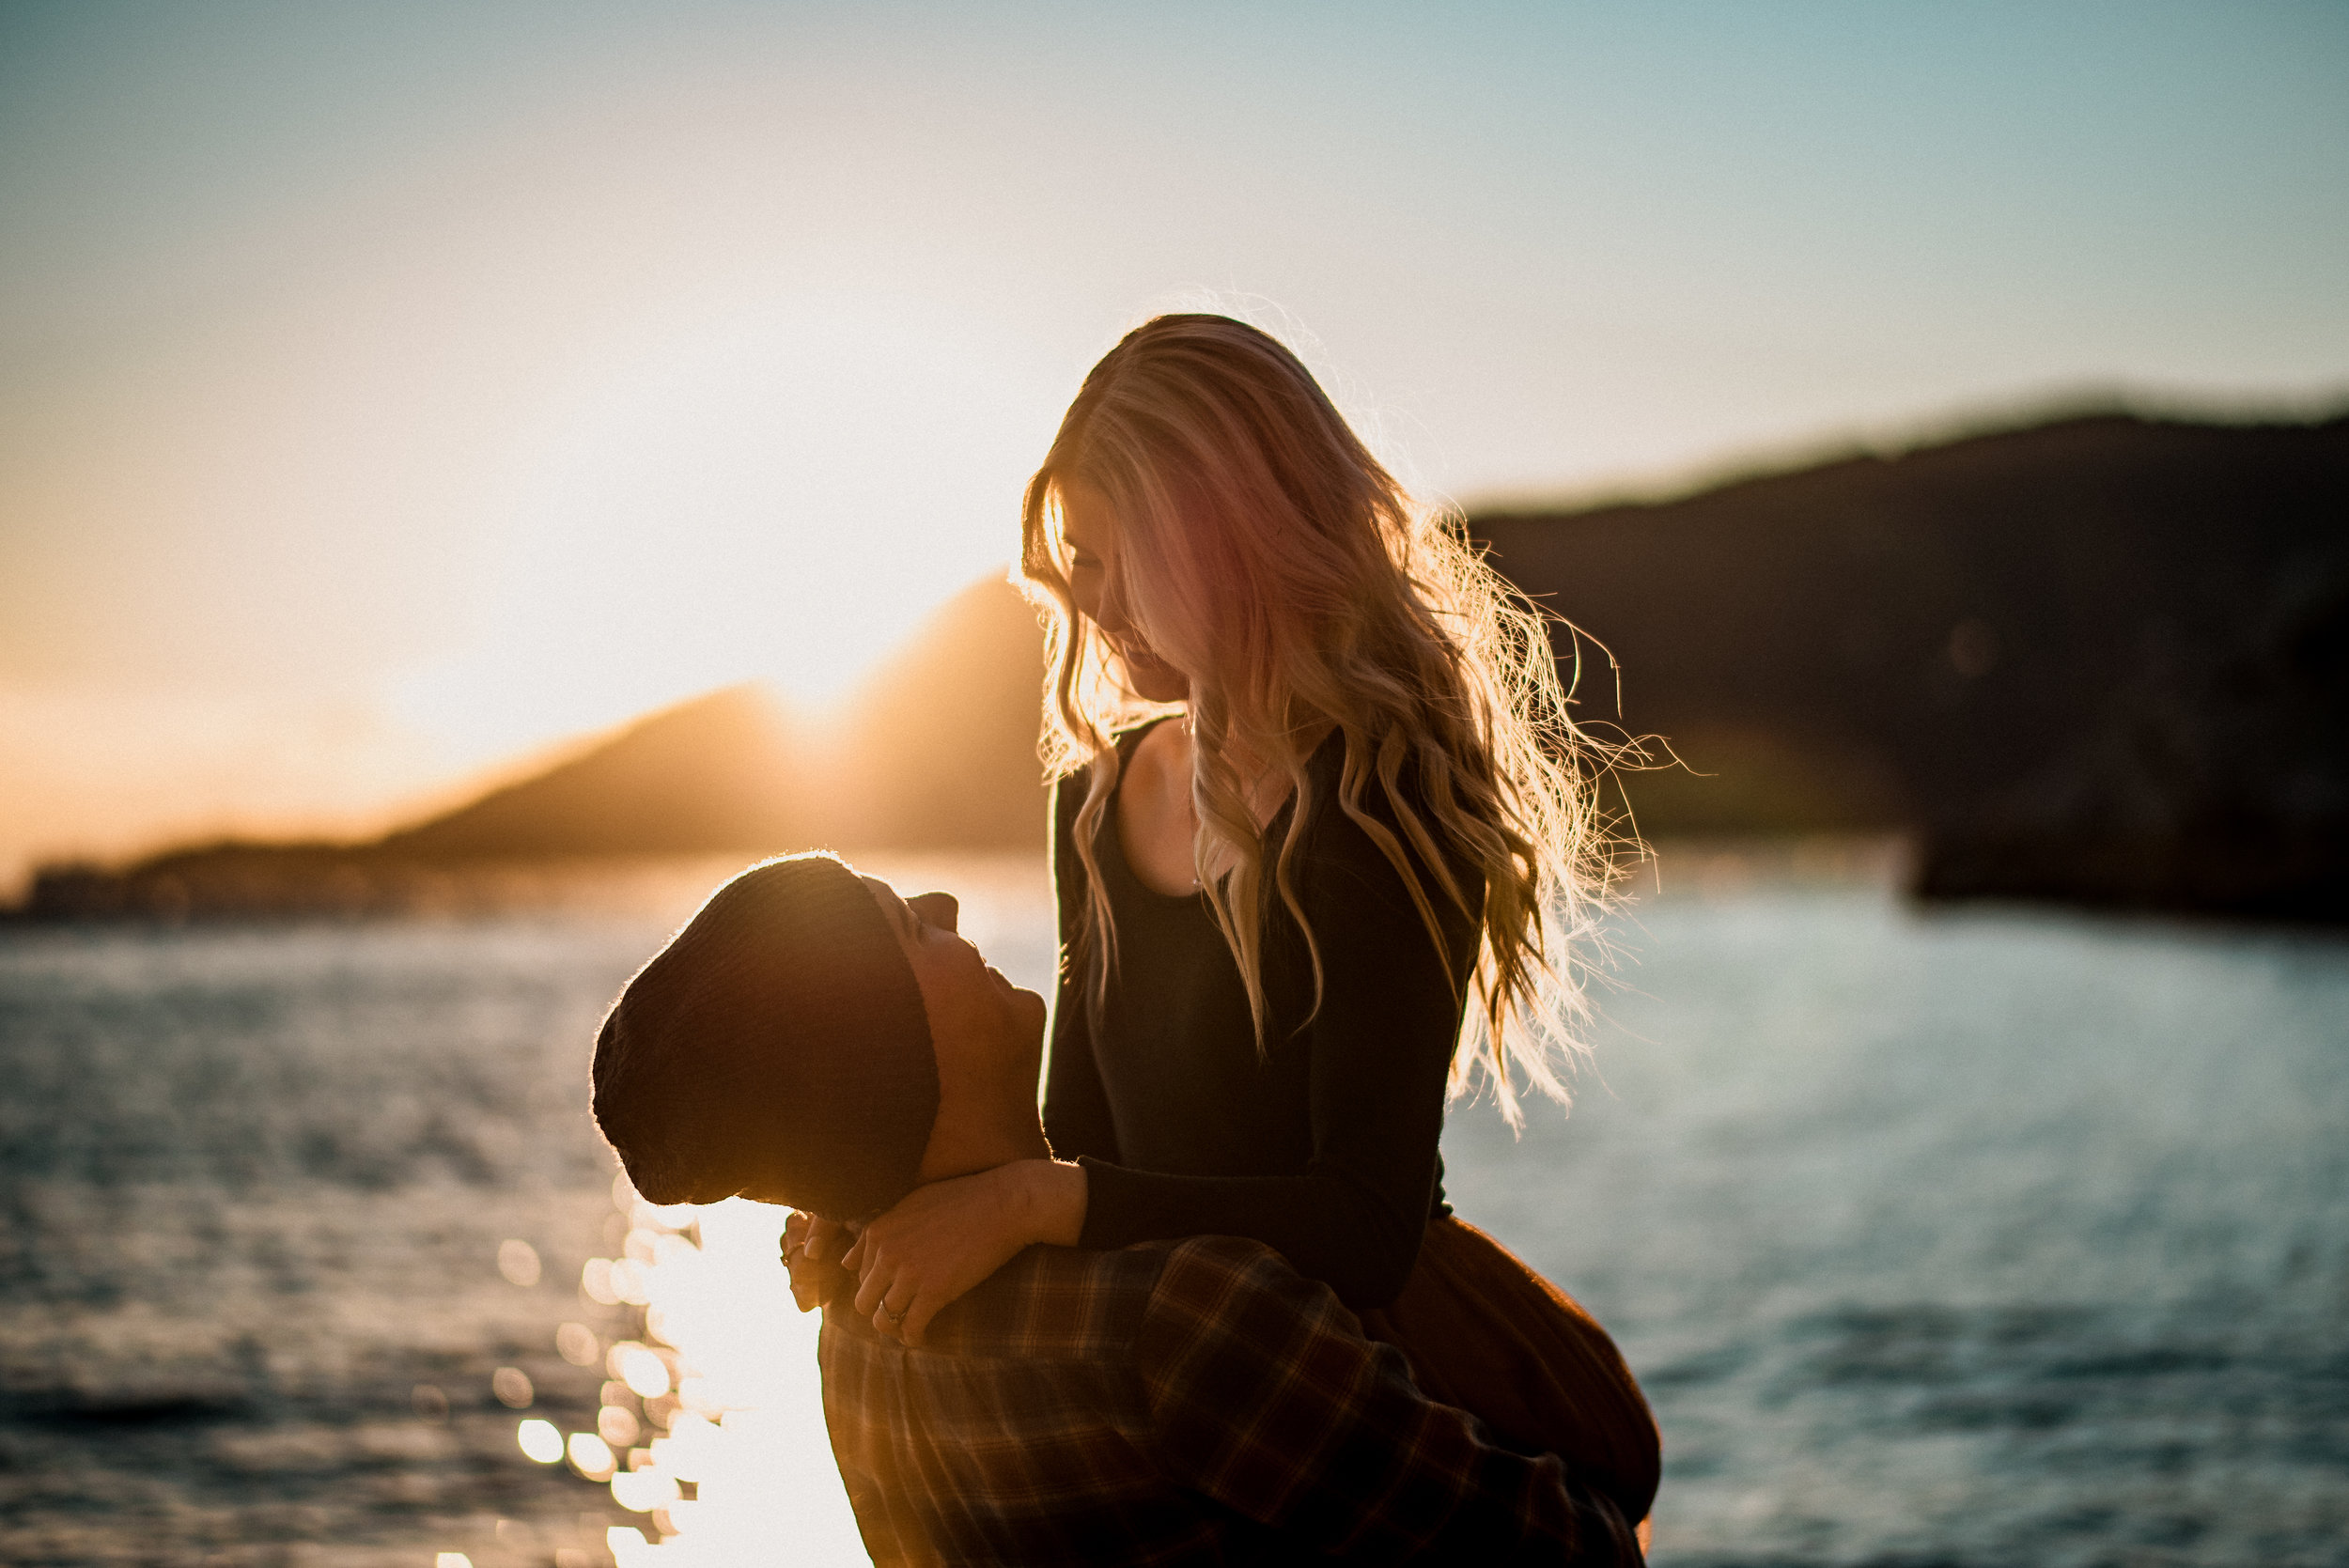 whytecliff park engagement session wedding photography vancouver